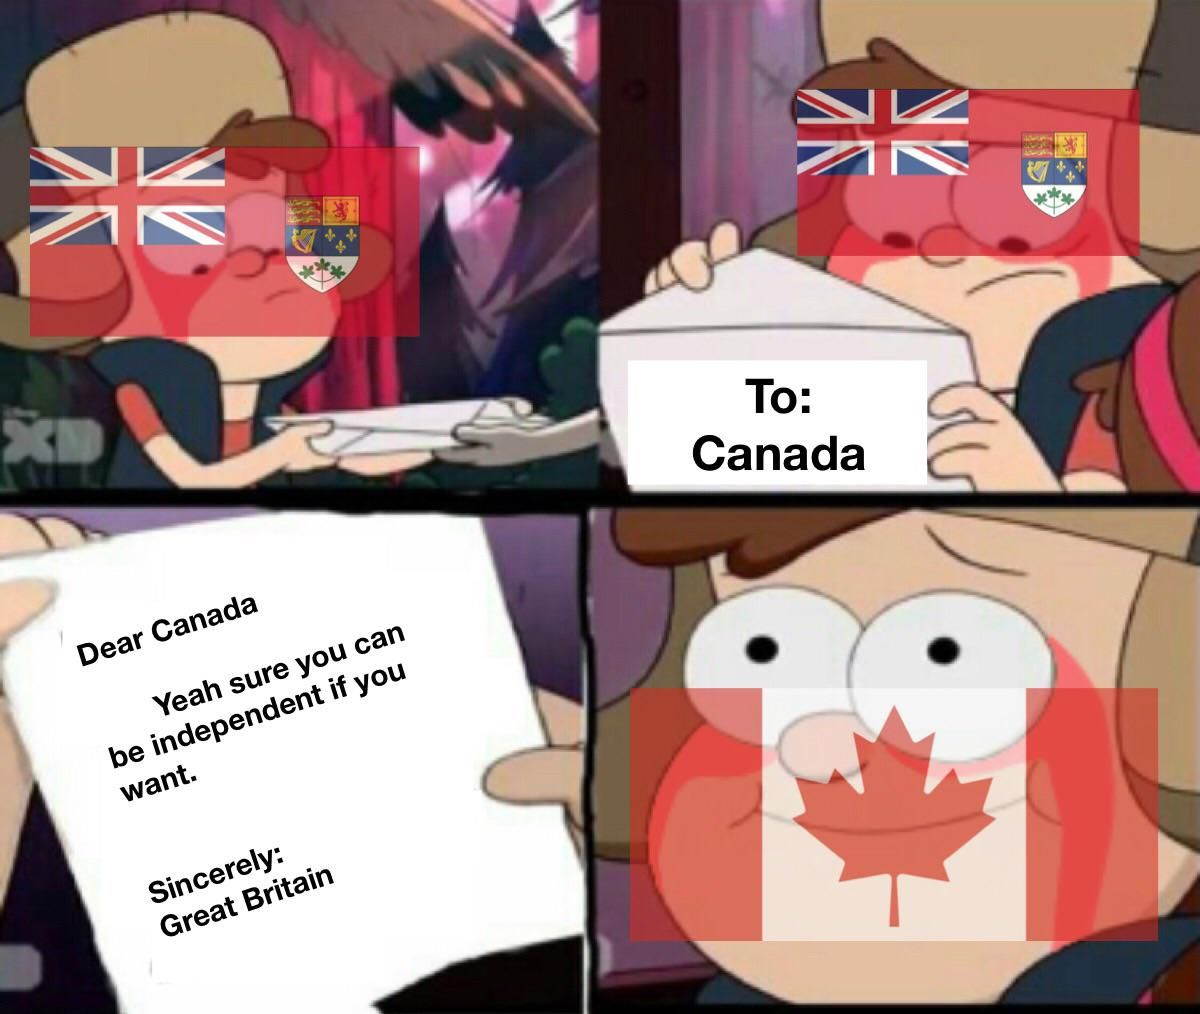 And the land of maple was born